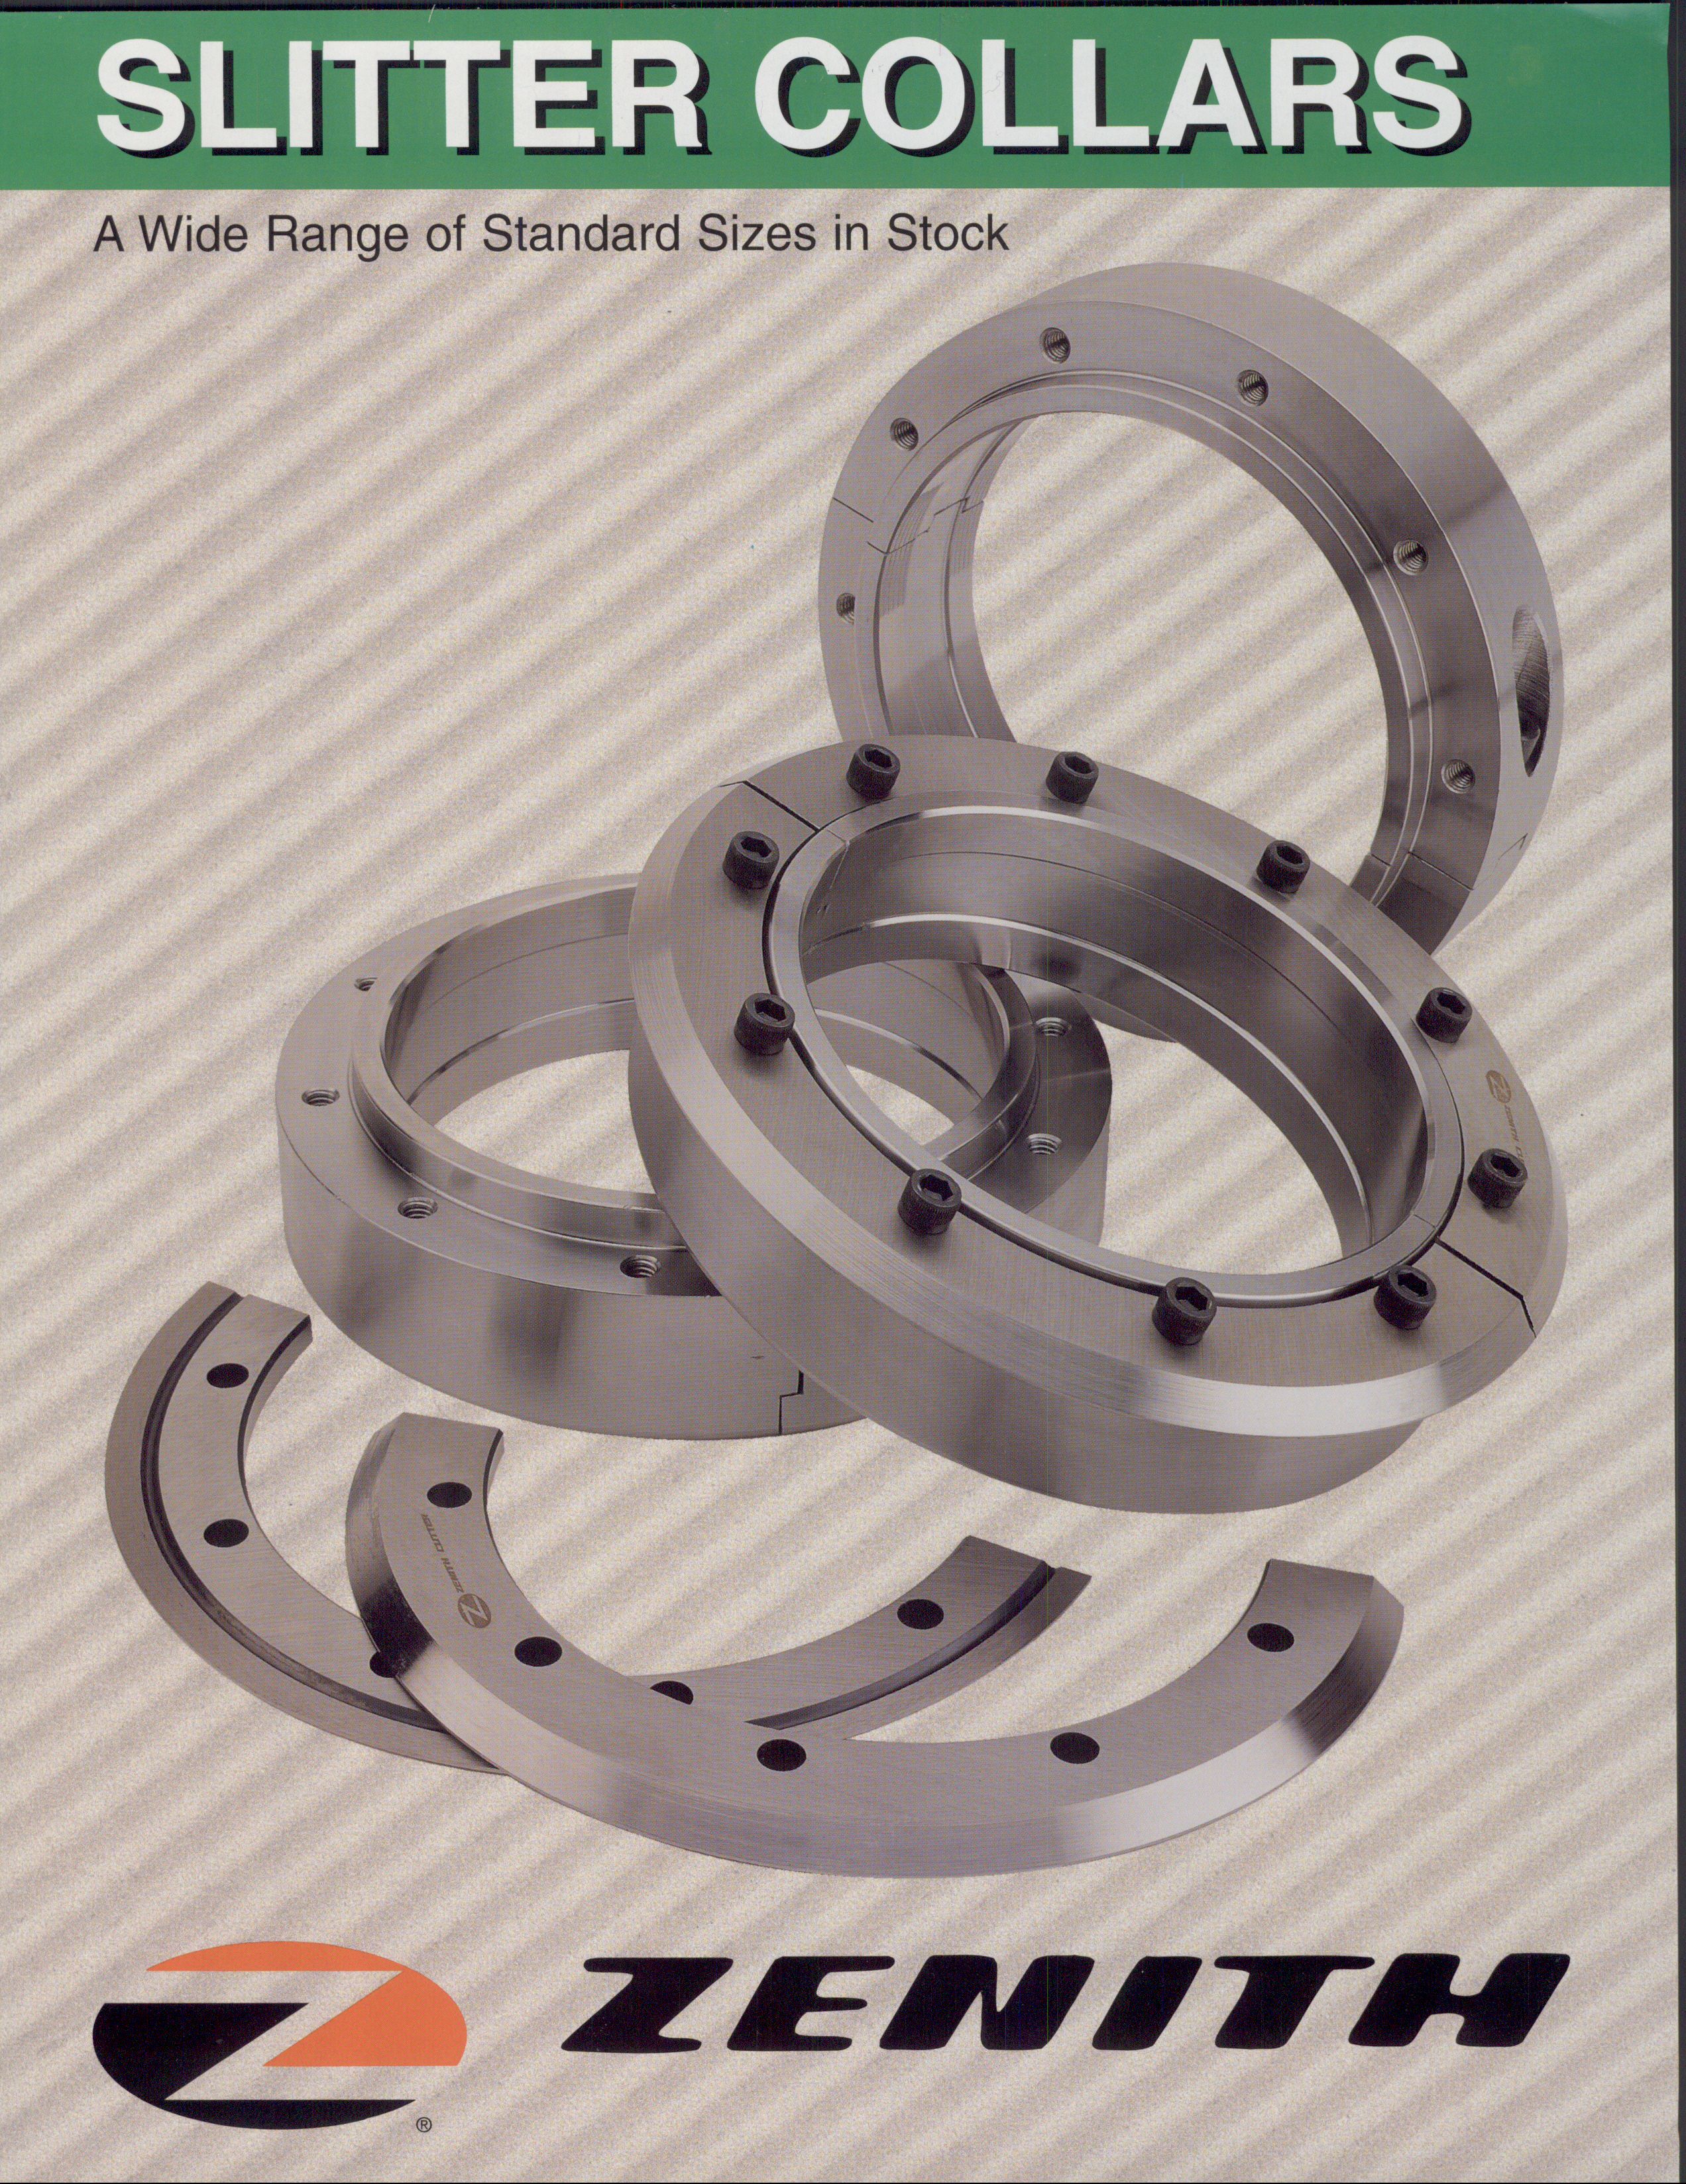 Read more about Slitter Collars in the Zenith Cutter brochure